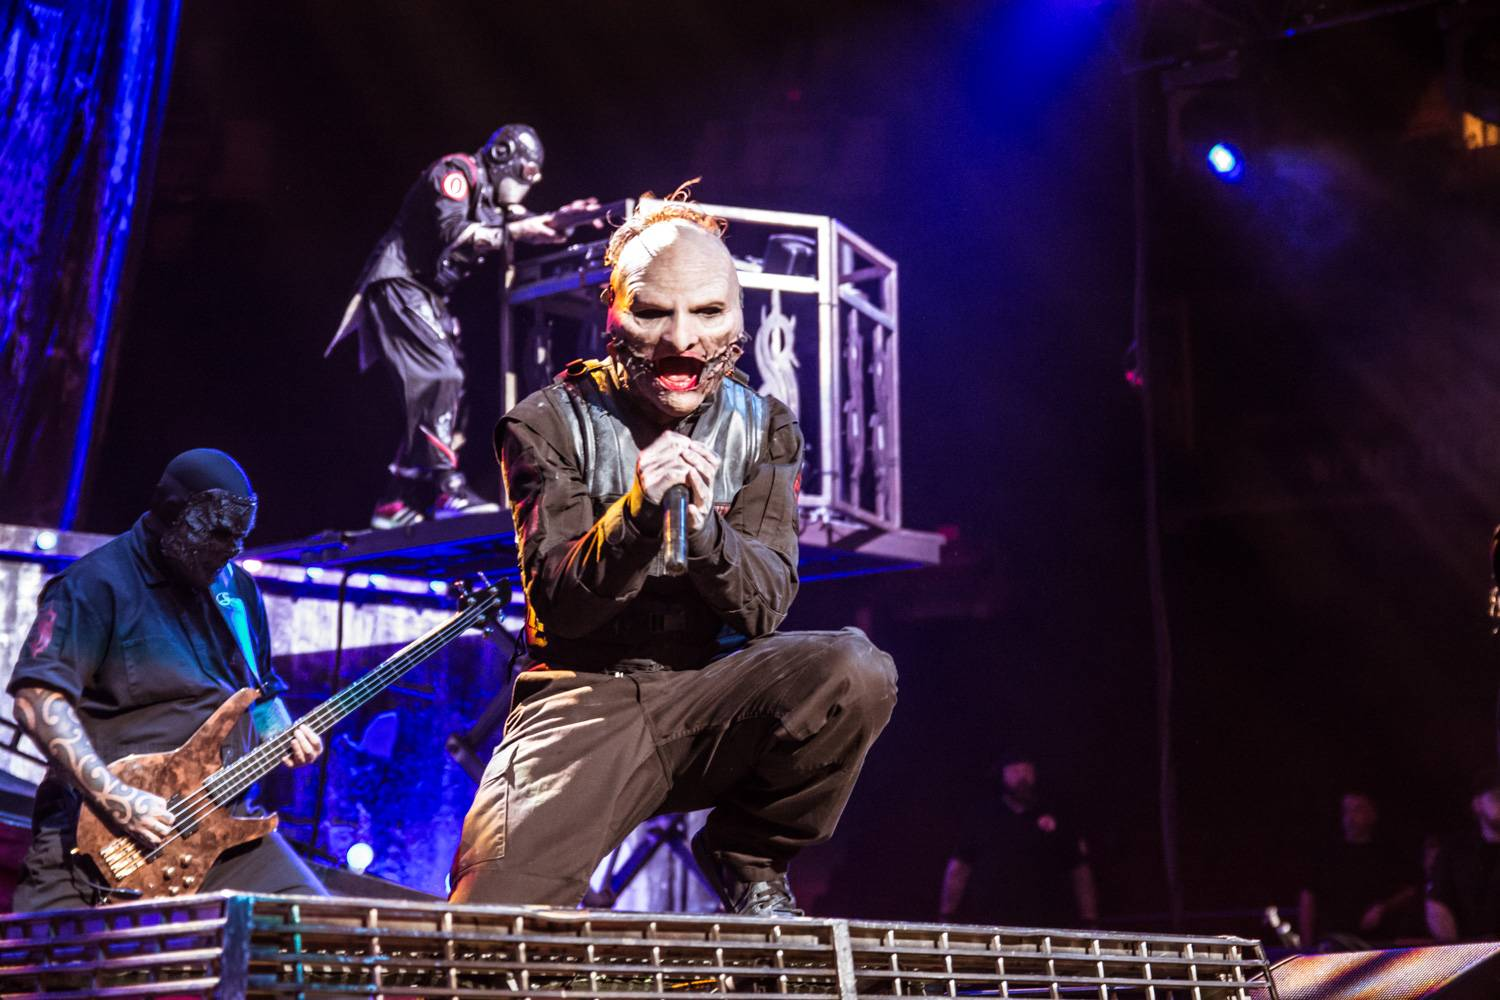 Slipknot at Rogers Arena, Vancouver, Aug 24 2015. Pavel Boiko photo.